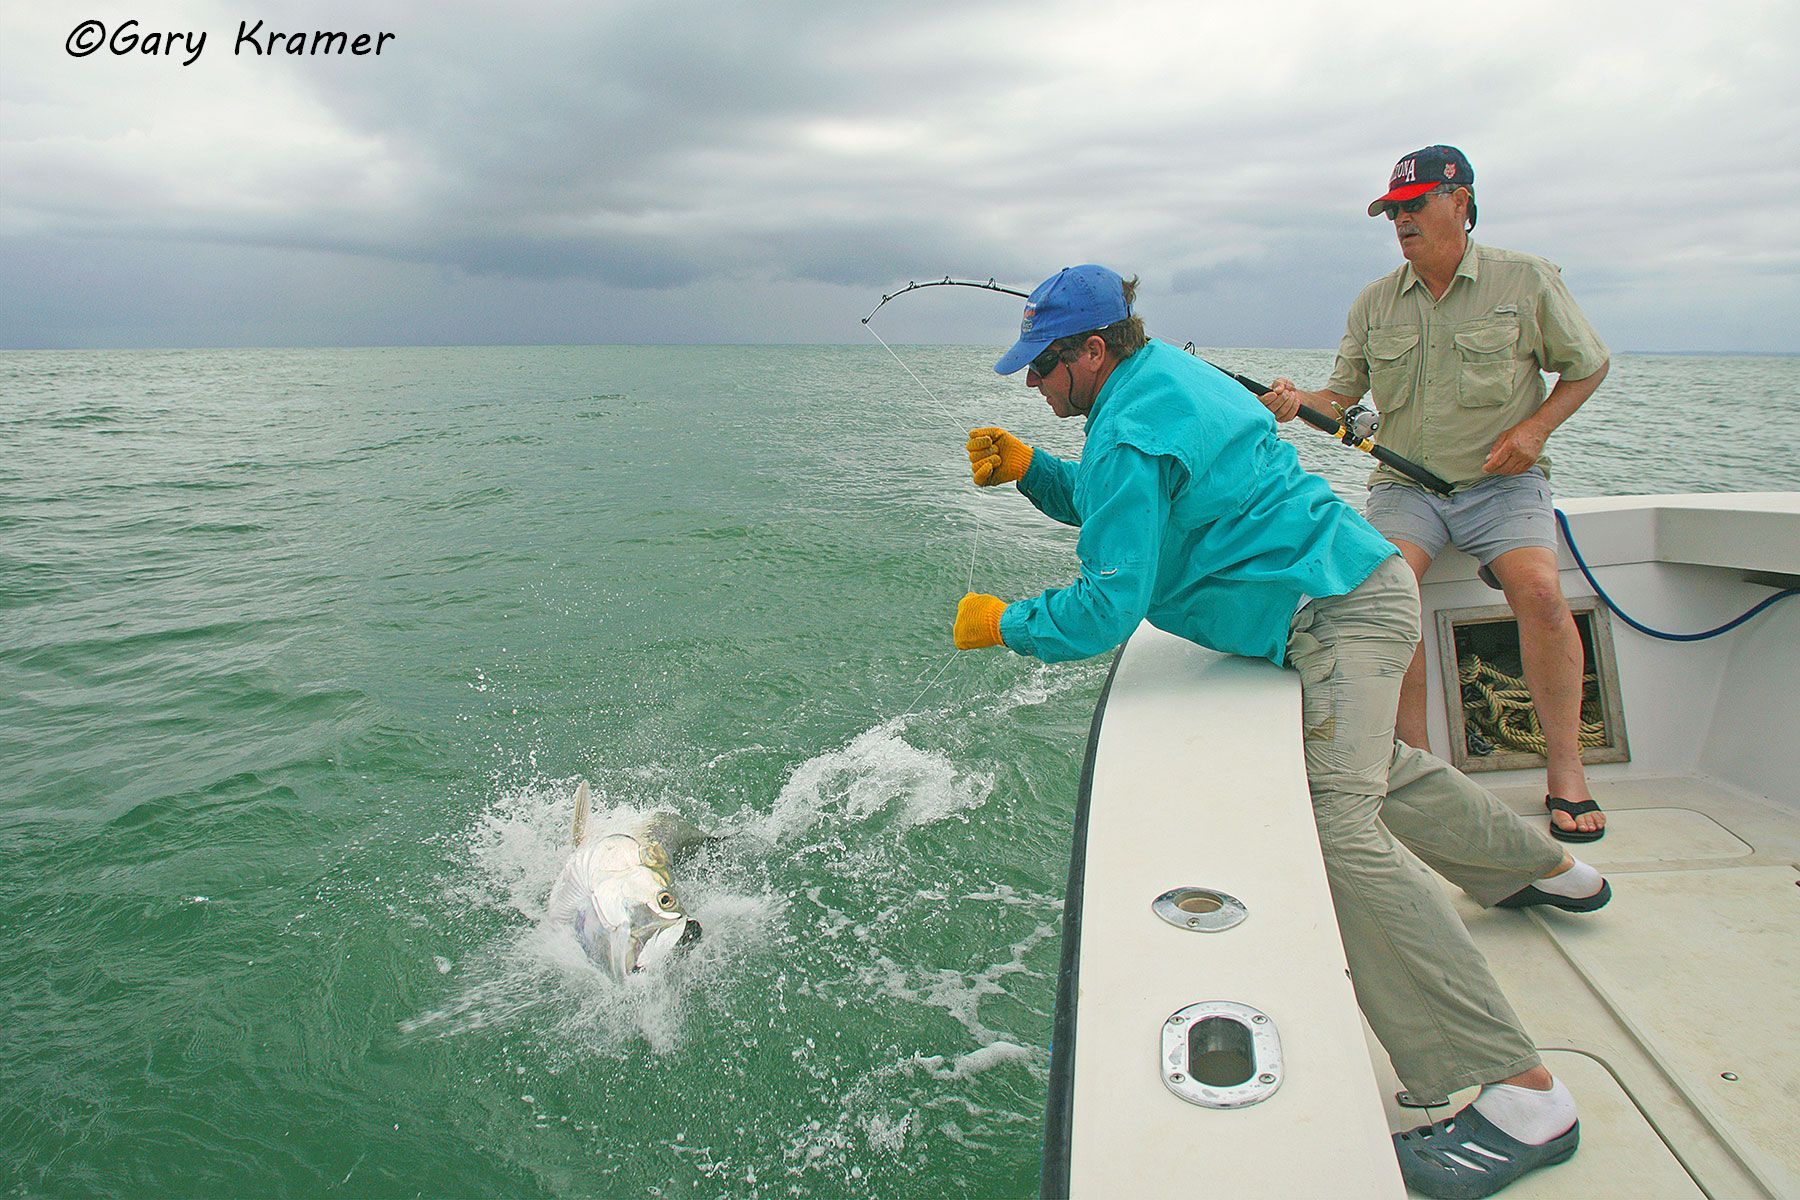 Anglers with Tarpon at leader, Panama - NFTe#009d